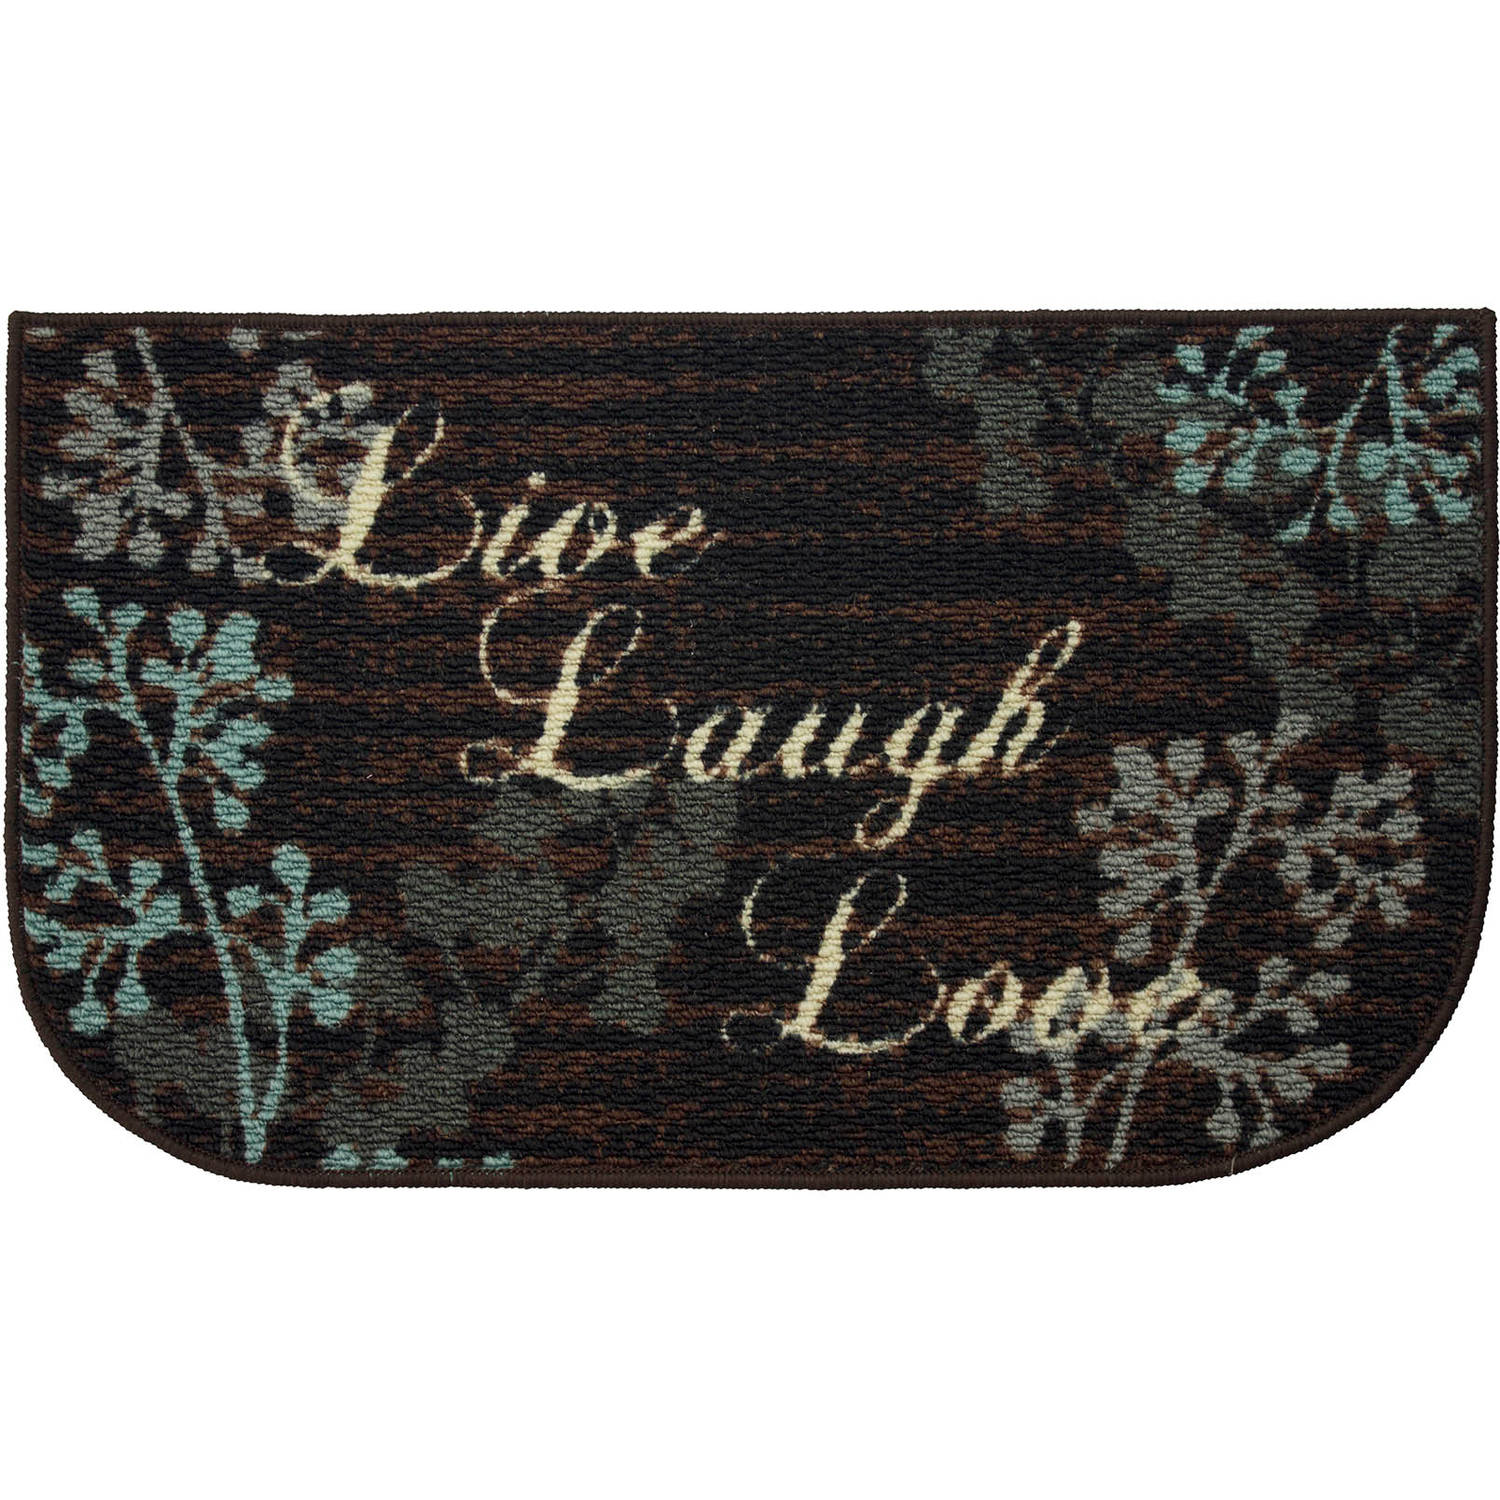 Structures Live Laugh Love Printed Textured Loop Kitchen Accent Rug